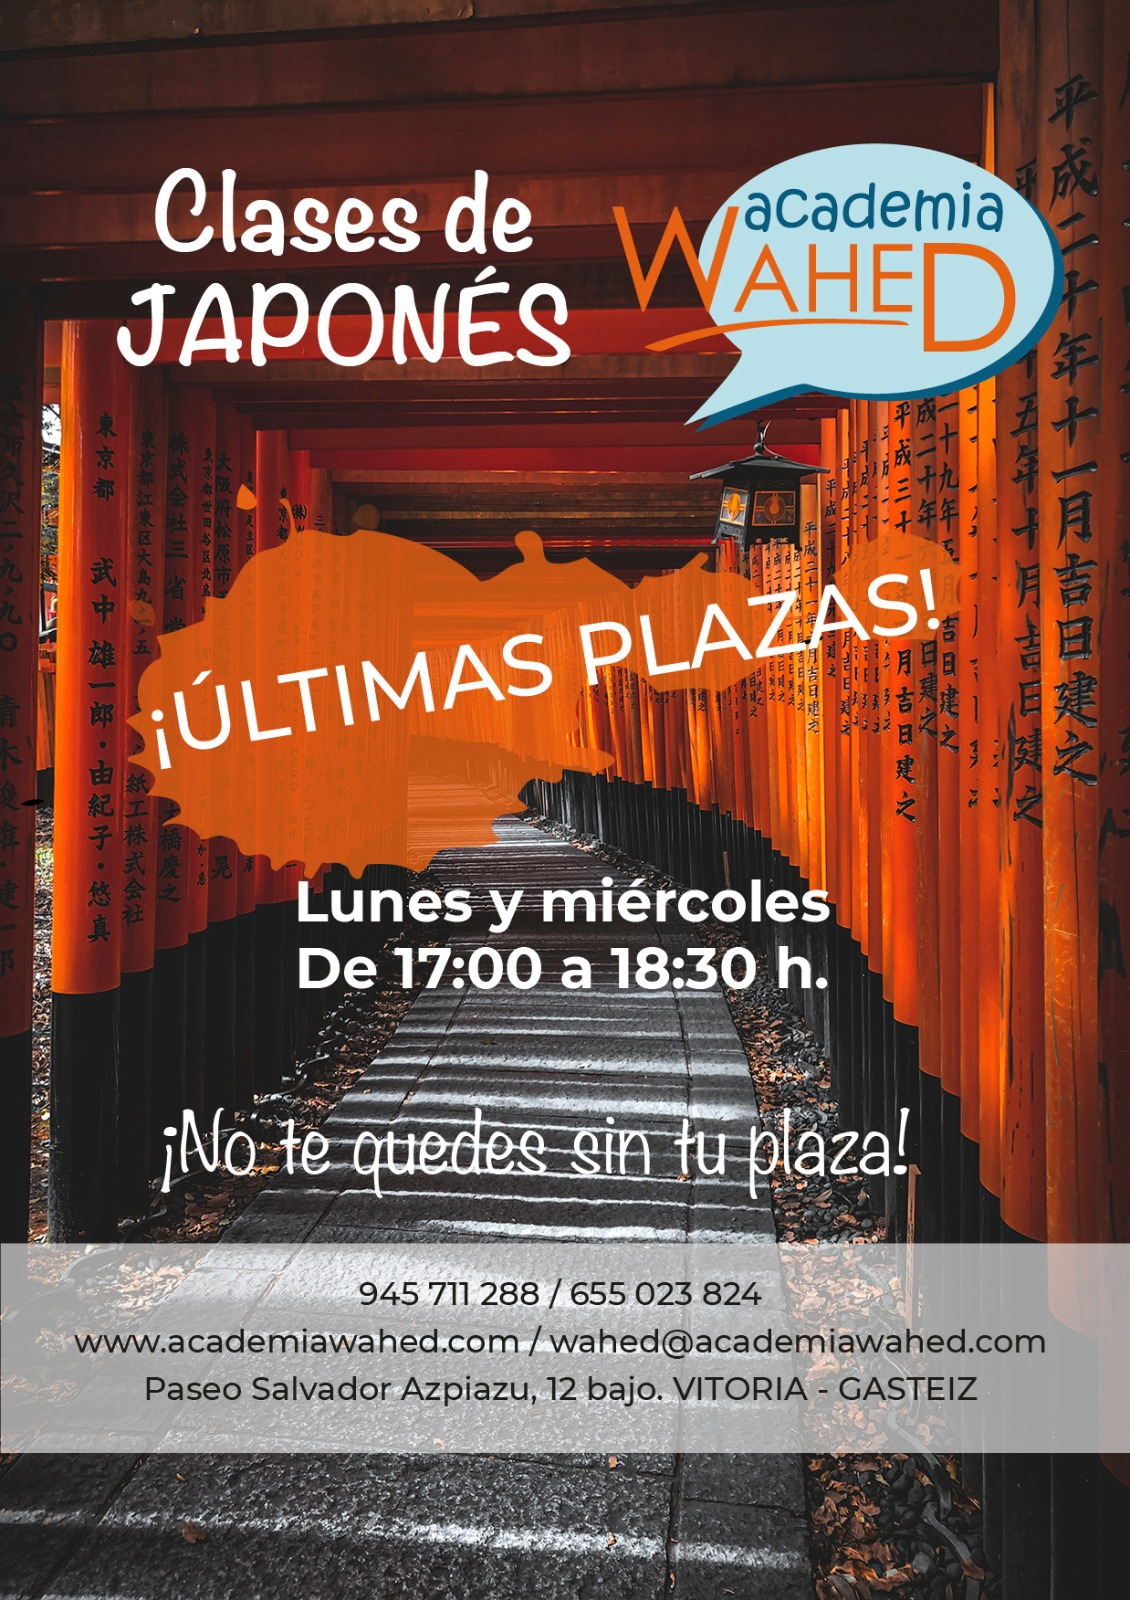 Ultimas plazas Japones Wahed